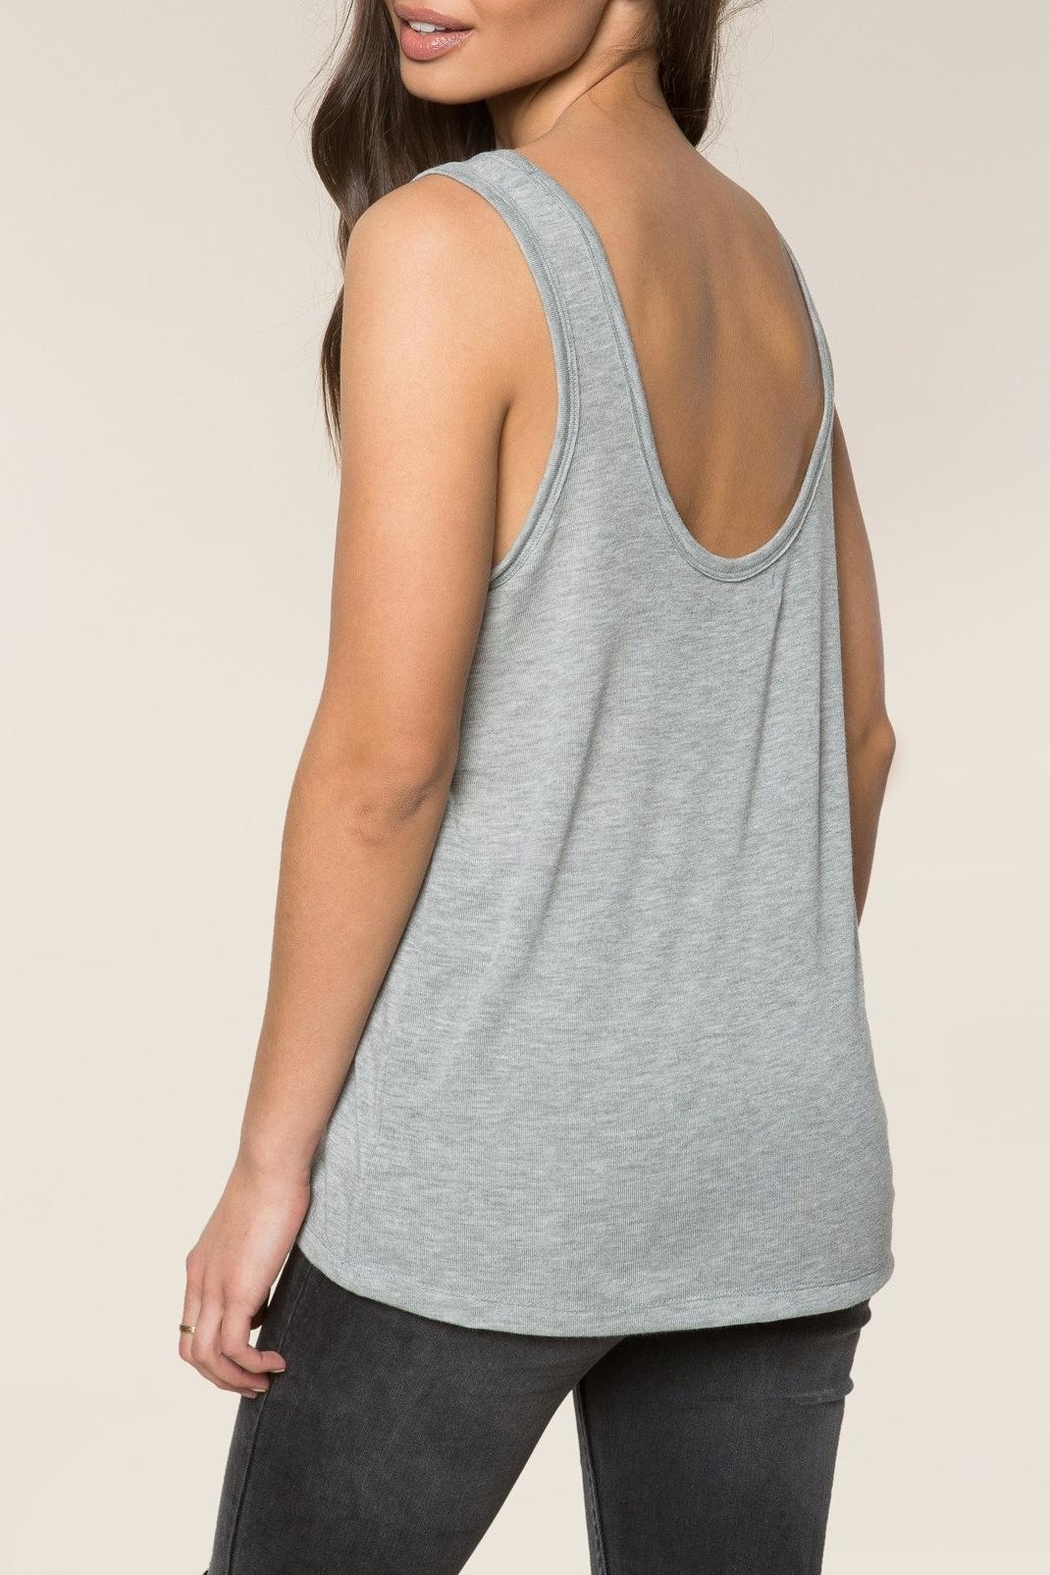 SPIRITUAL GANGSTER Namaste Scoop Tank Top - Side Cropped Image